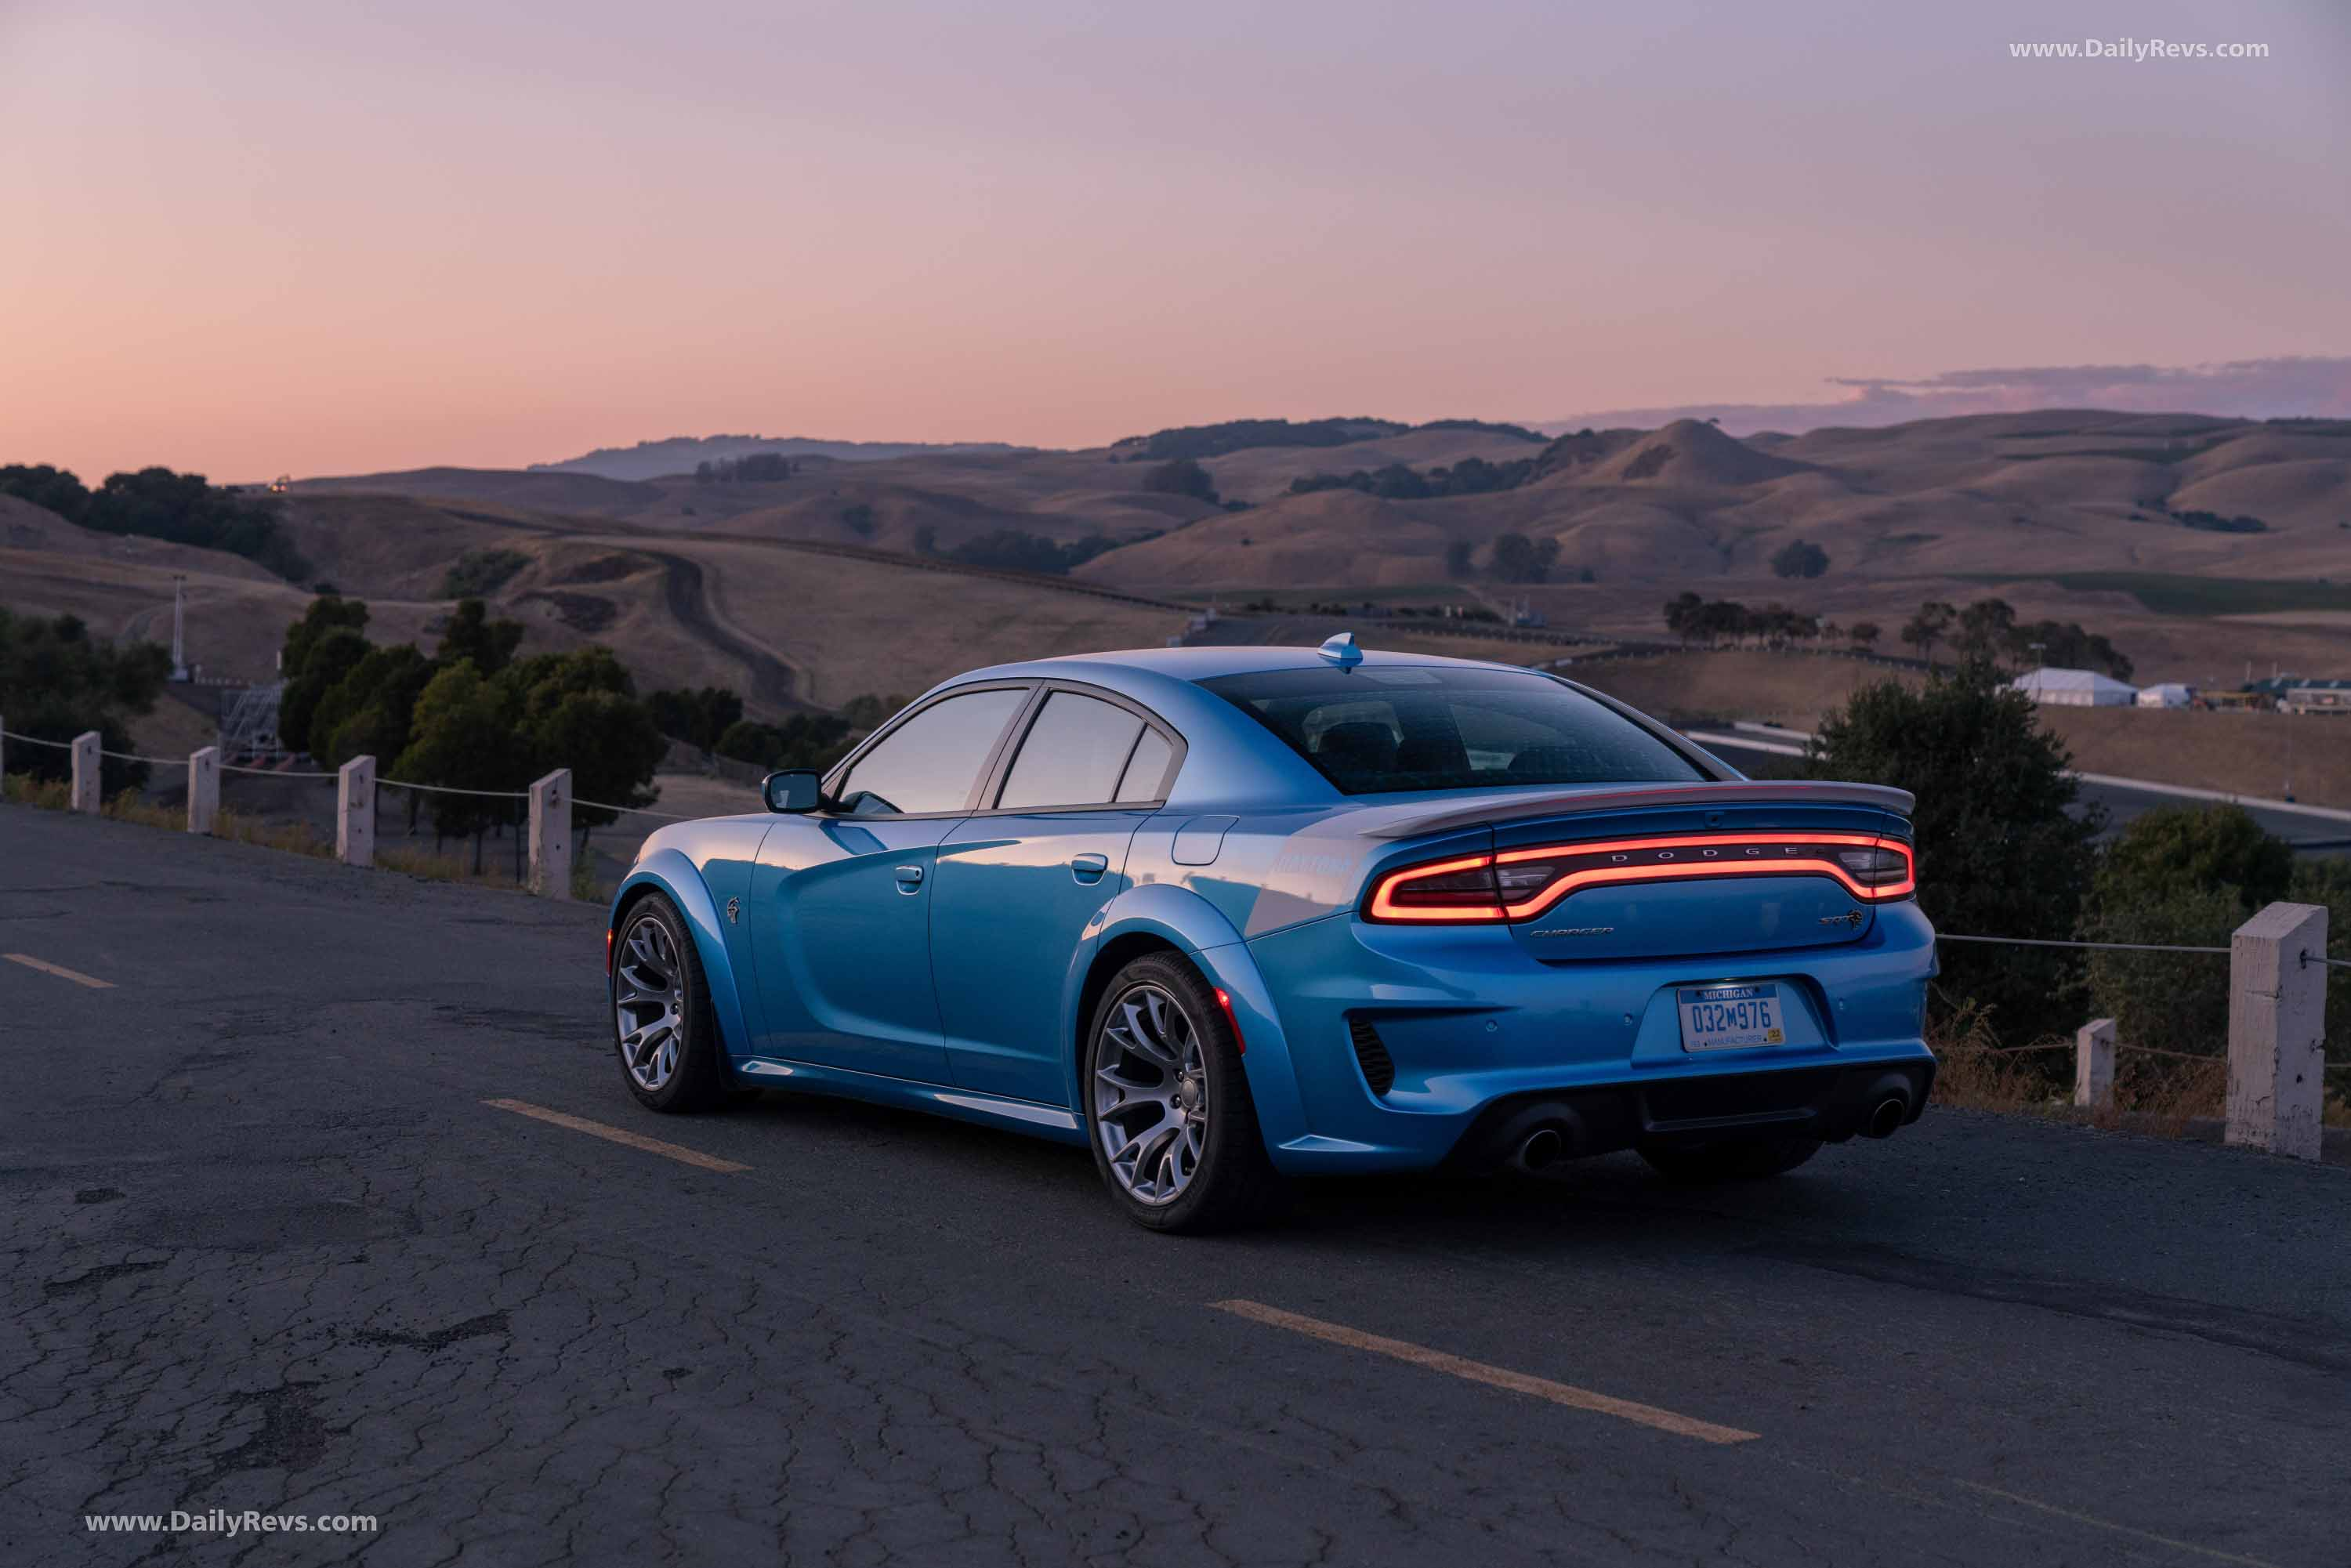 2020 dodge charger srt hellcat widebody - hd pictures